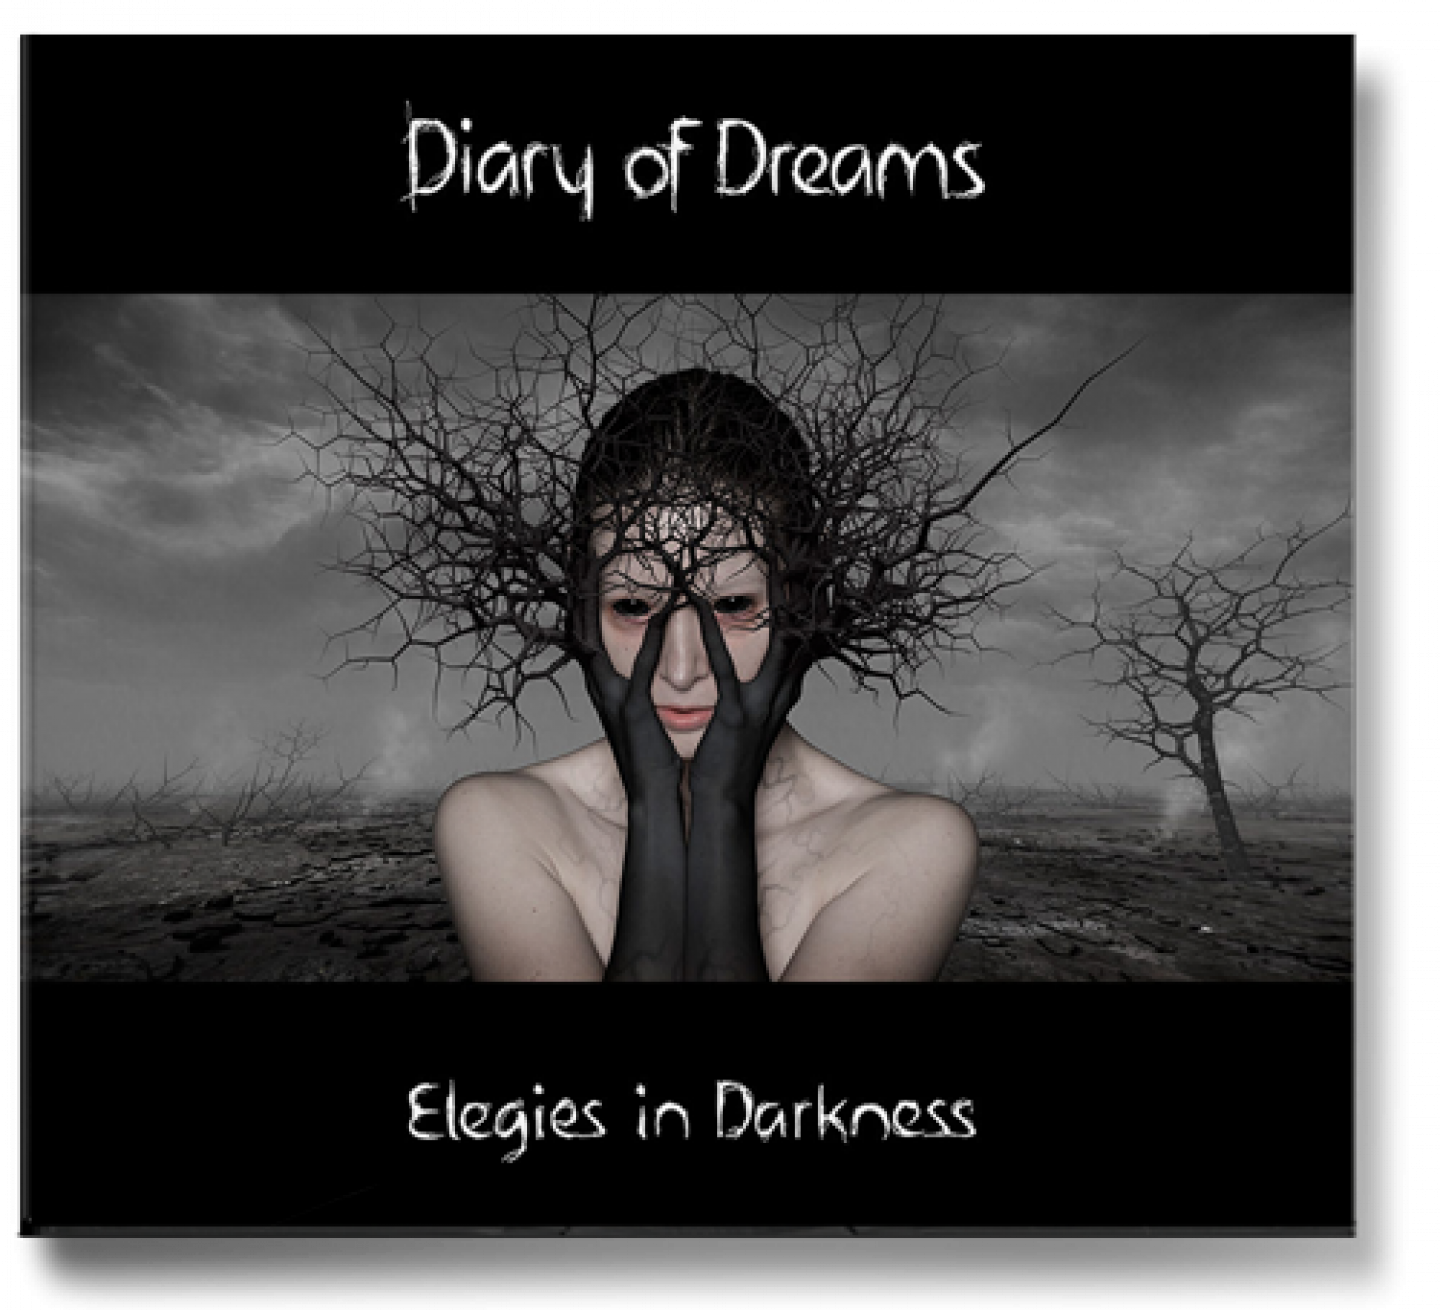 a0137_dod_elegies_in_darkness